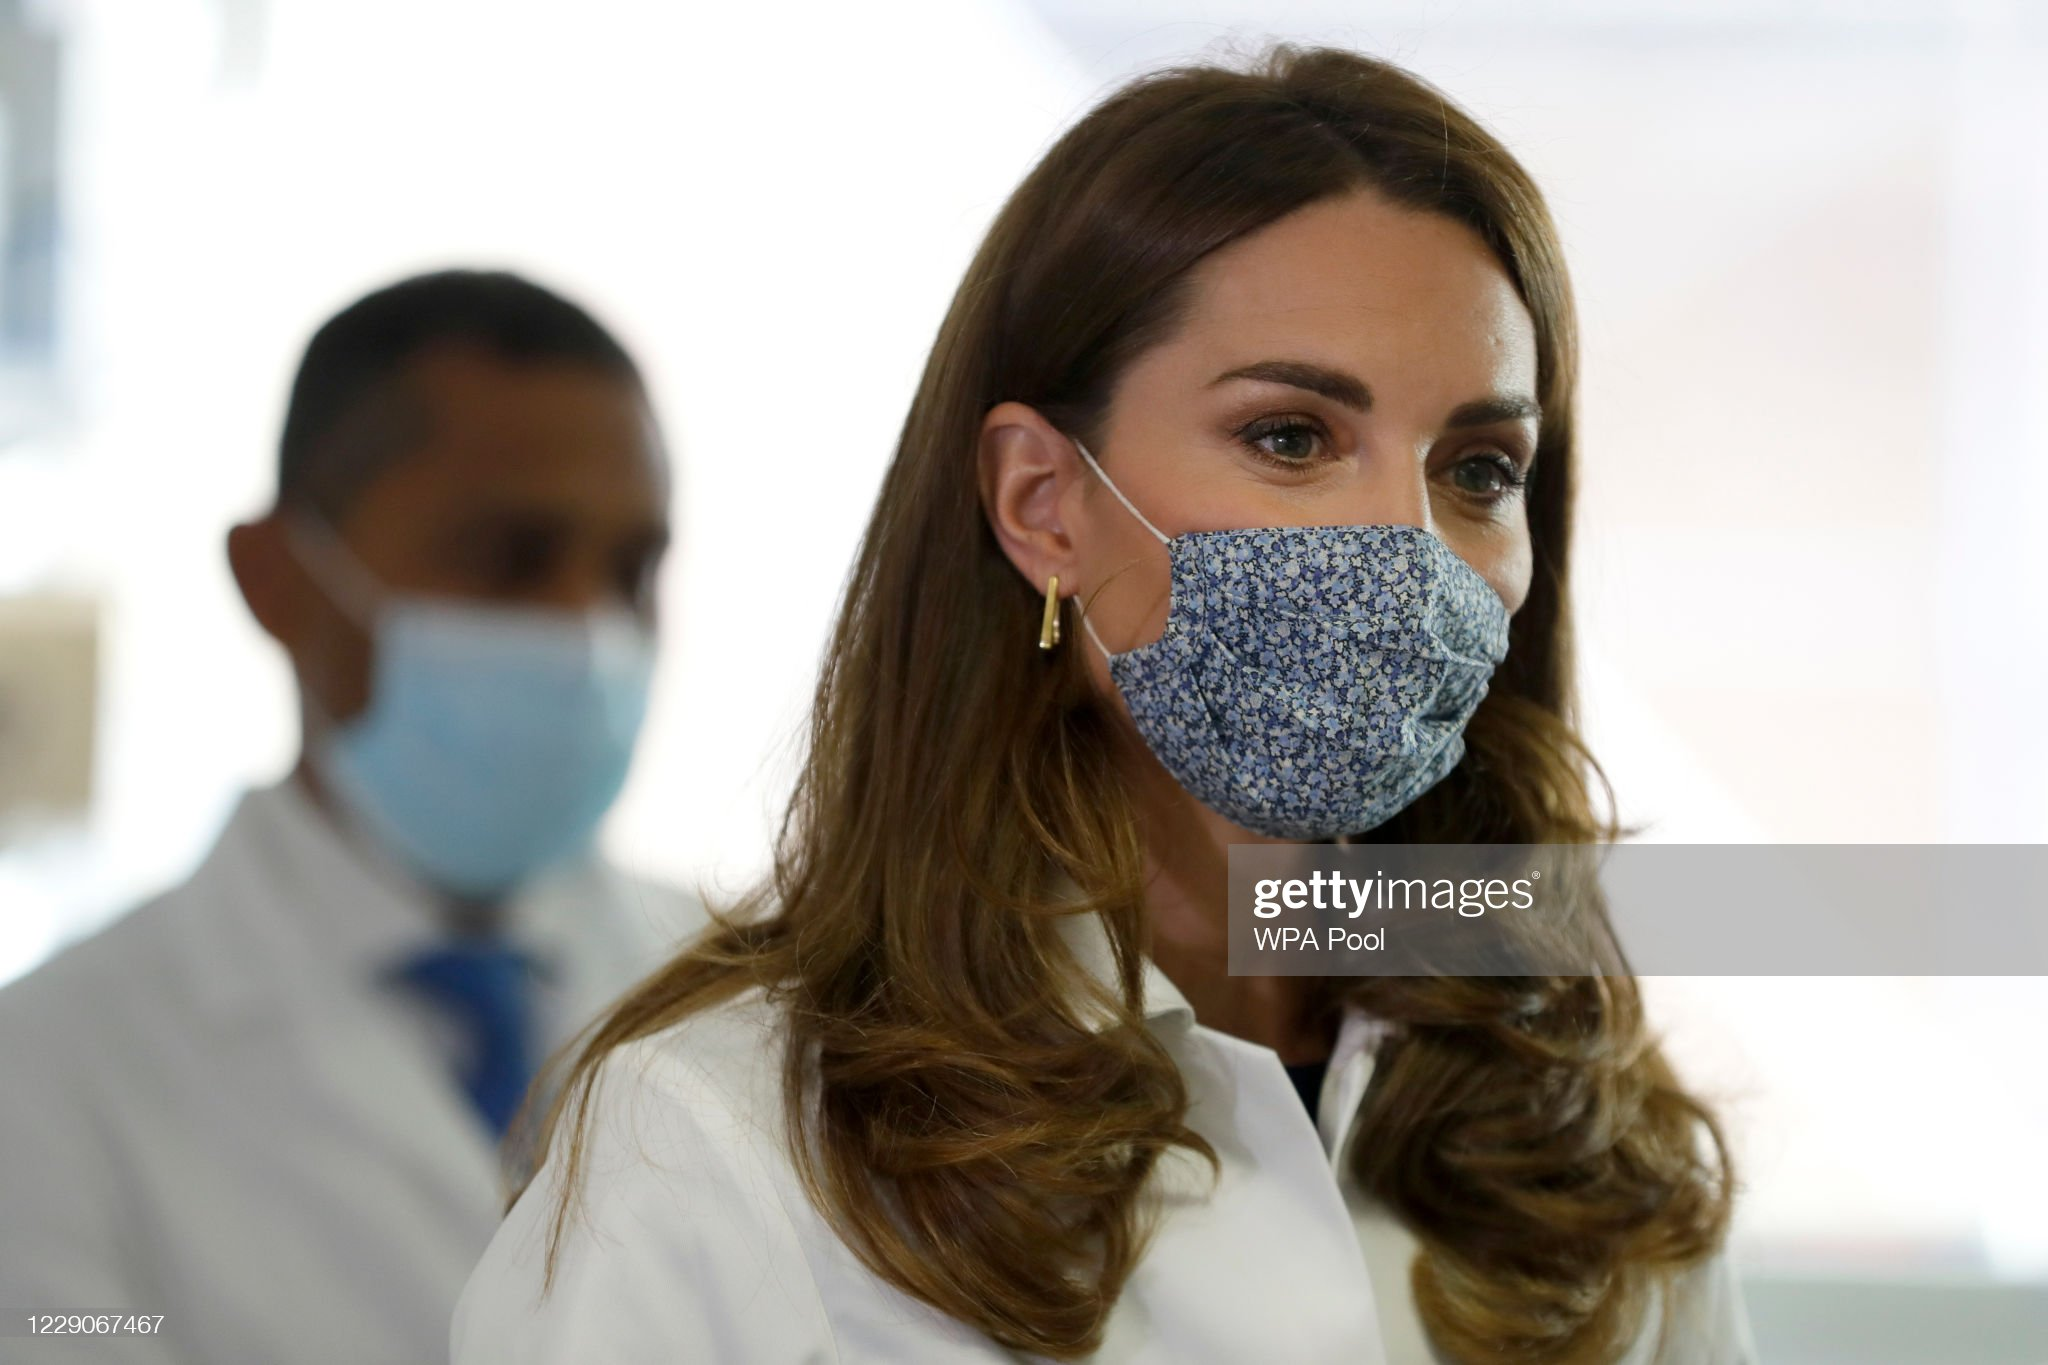 catherine-duchess-of-cambridge-tours-a-laboratory-during-a-visit-to-picture-id1229067467